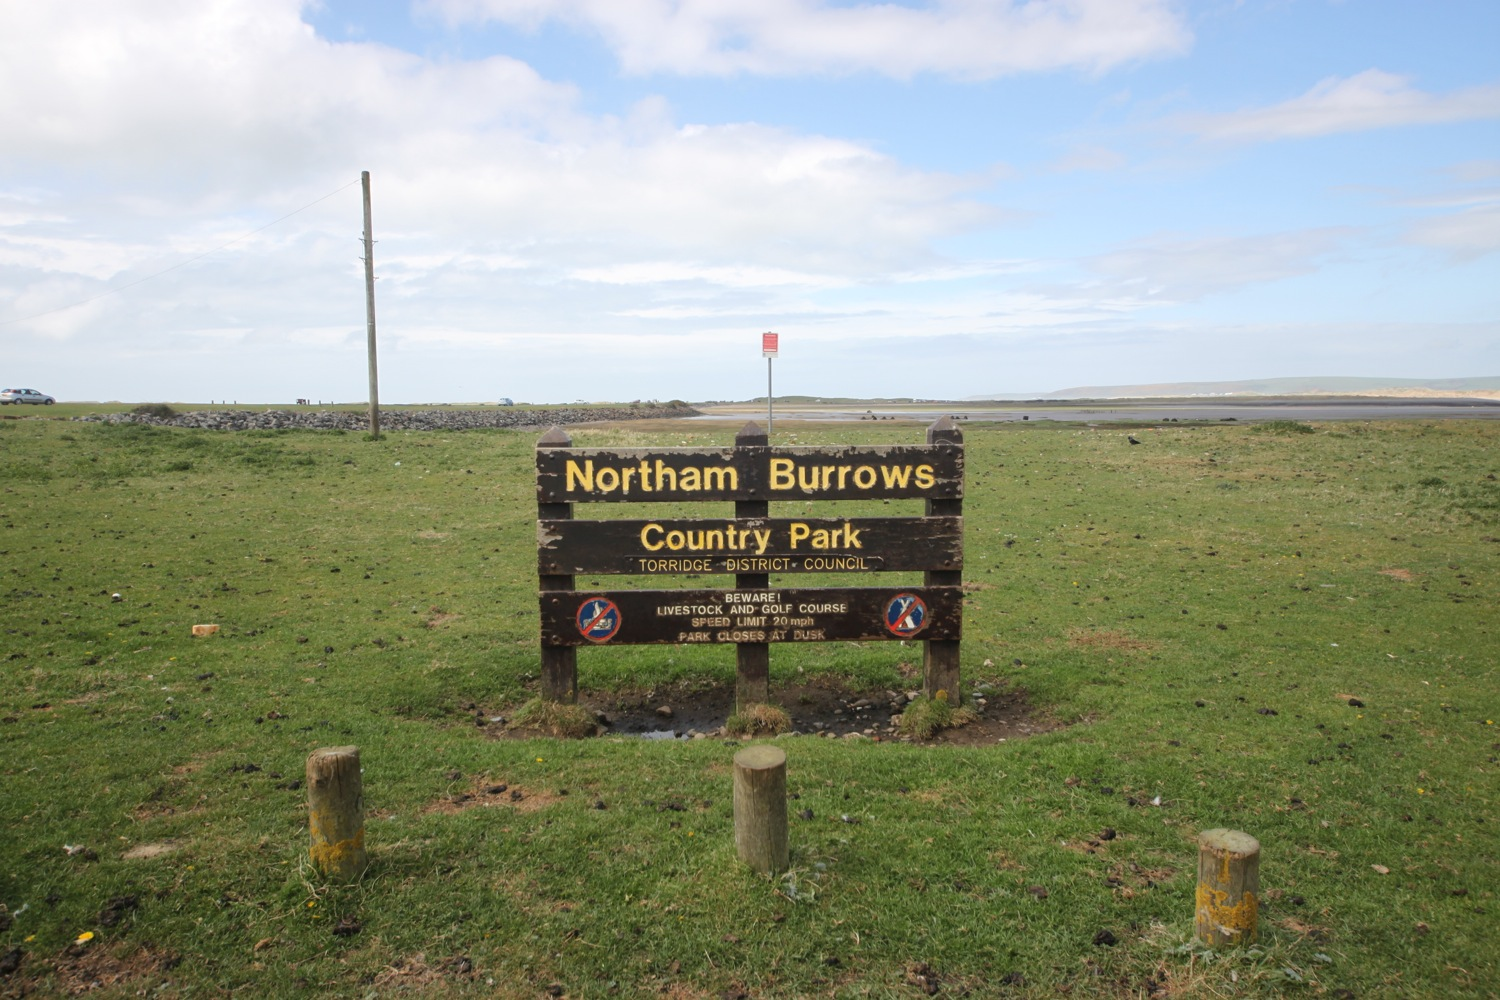 northam burrows country park